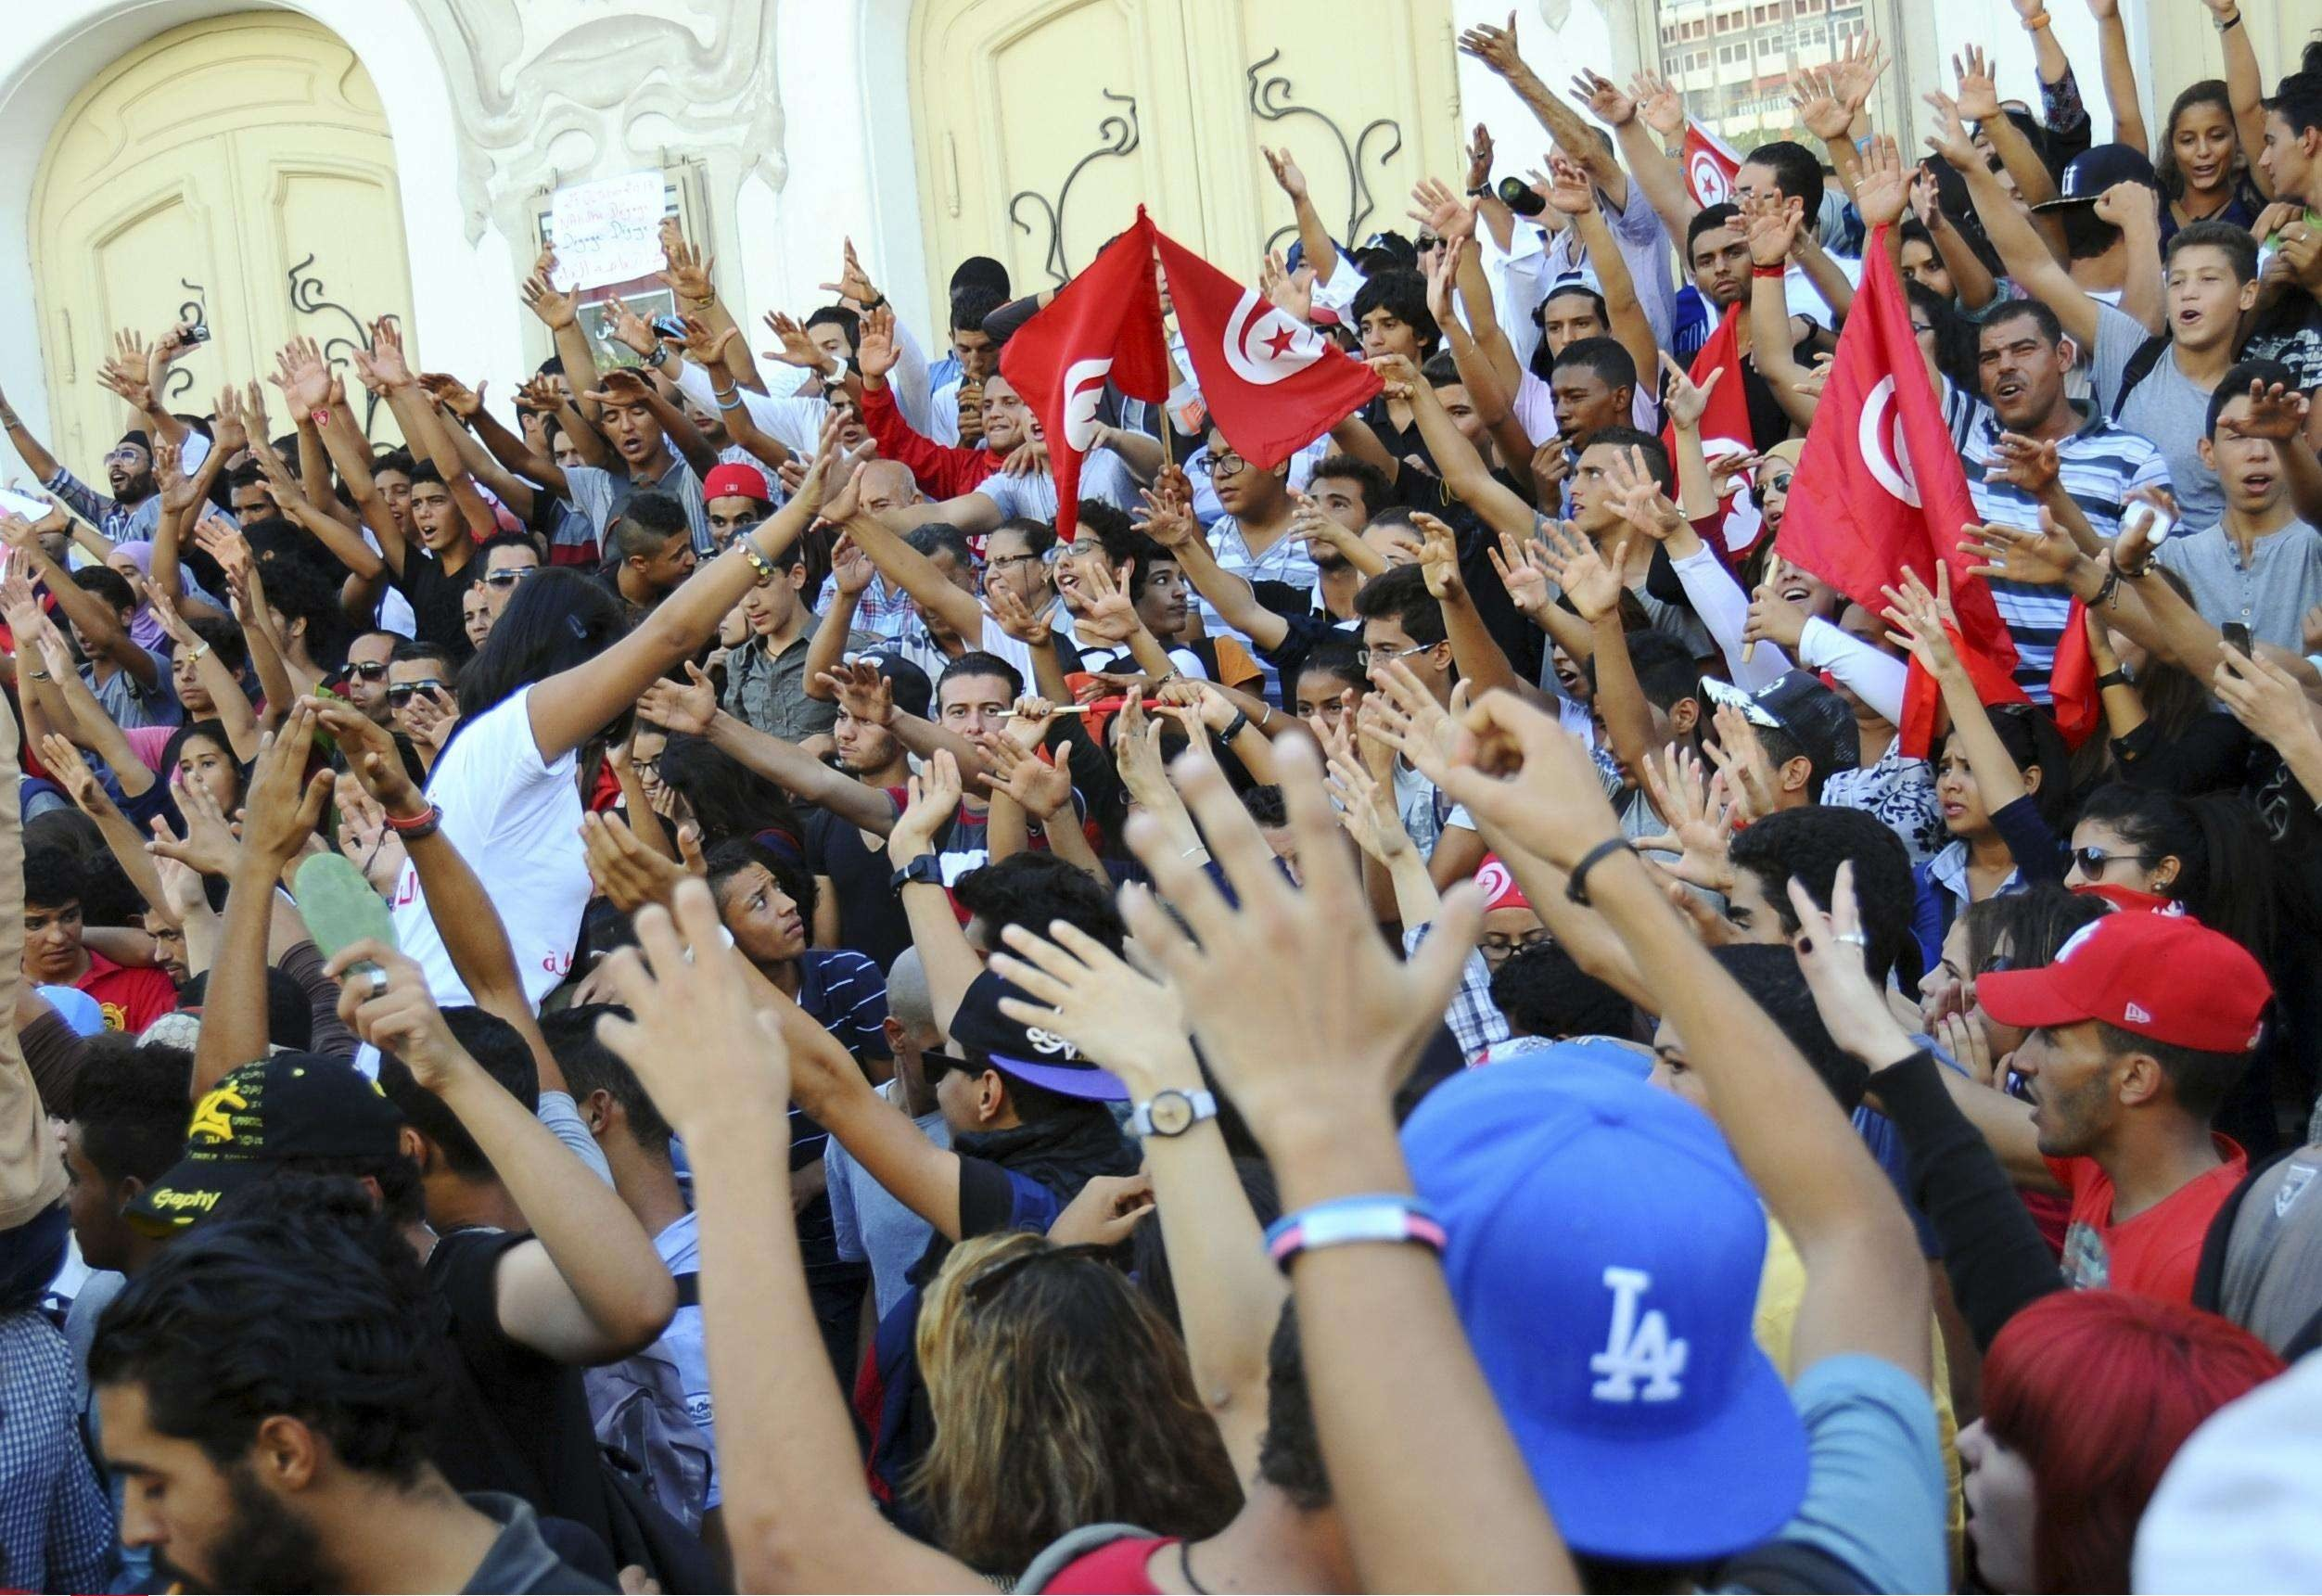 Une manifestation à Tunis, le 23 octobre 2013, appelant à la démission du gouvernement (image d'illustration).